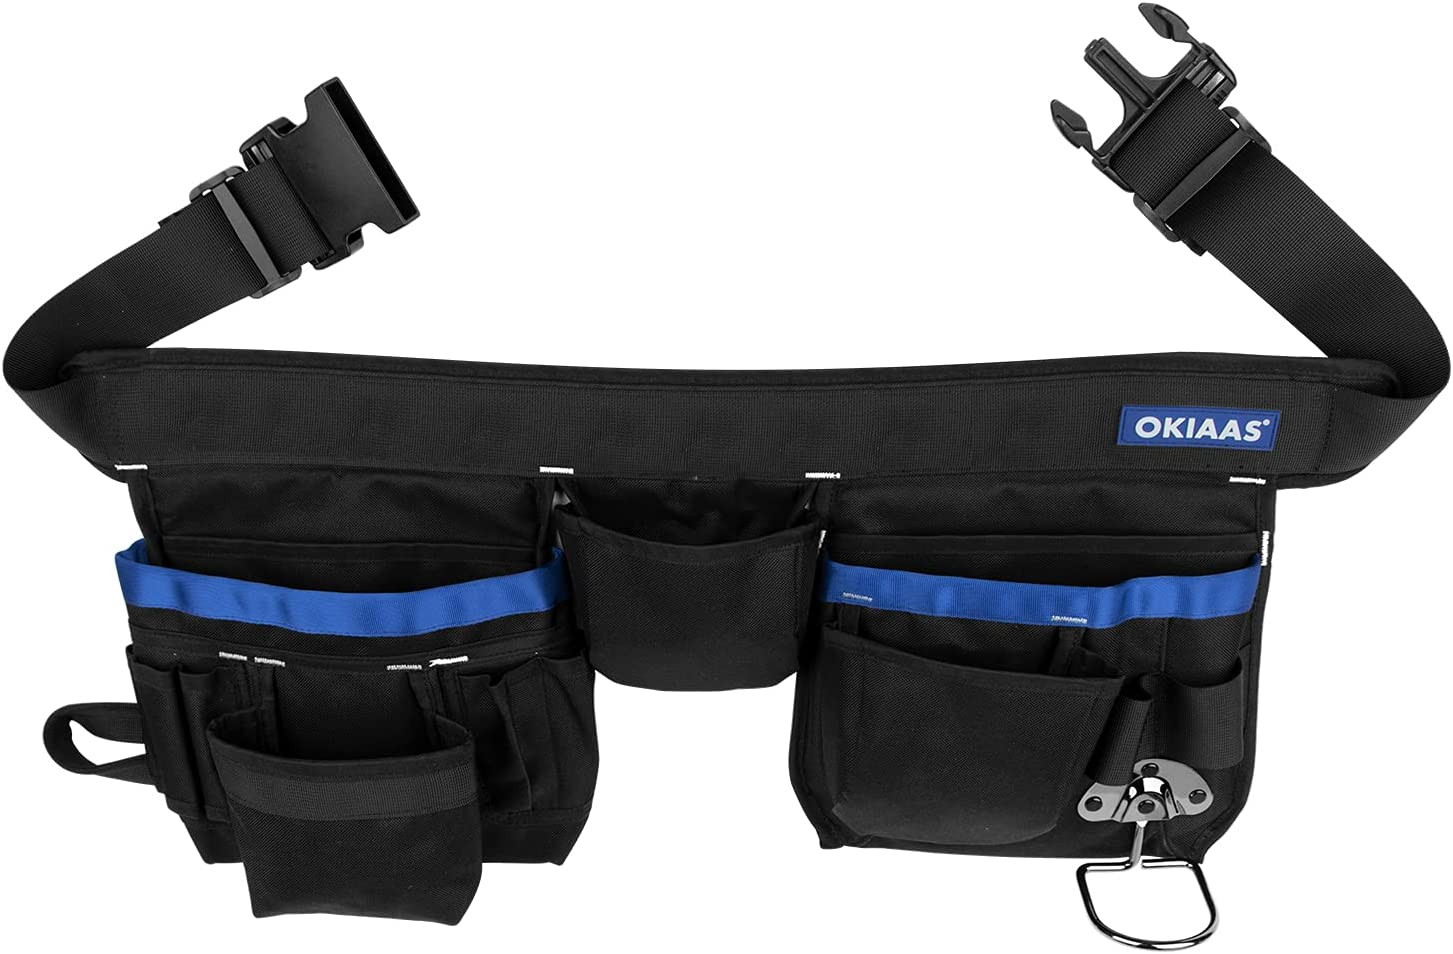 """OKIAAS Tool Belt, 21 Pockets, Adjustable Waist From 31""""To 53"""", Heavy Duty Tool Pouch Bag For Electrician, Carpenter, Framer, Construction, Gardening, Cleaning - -"""